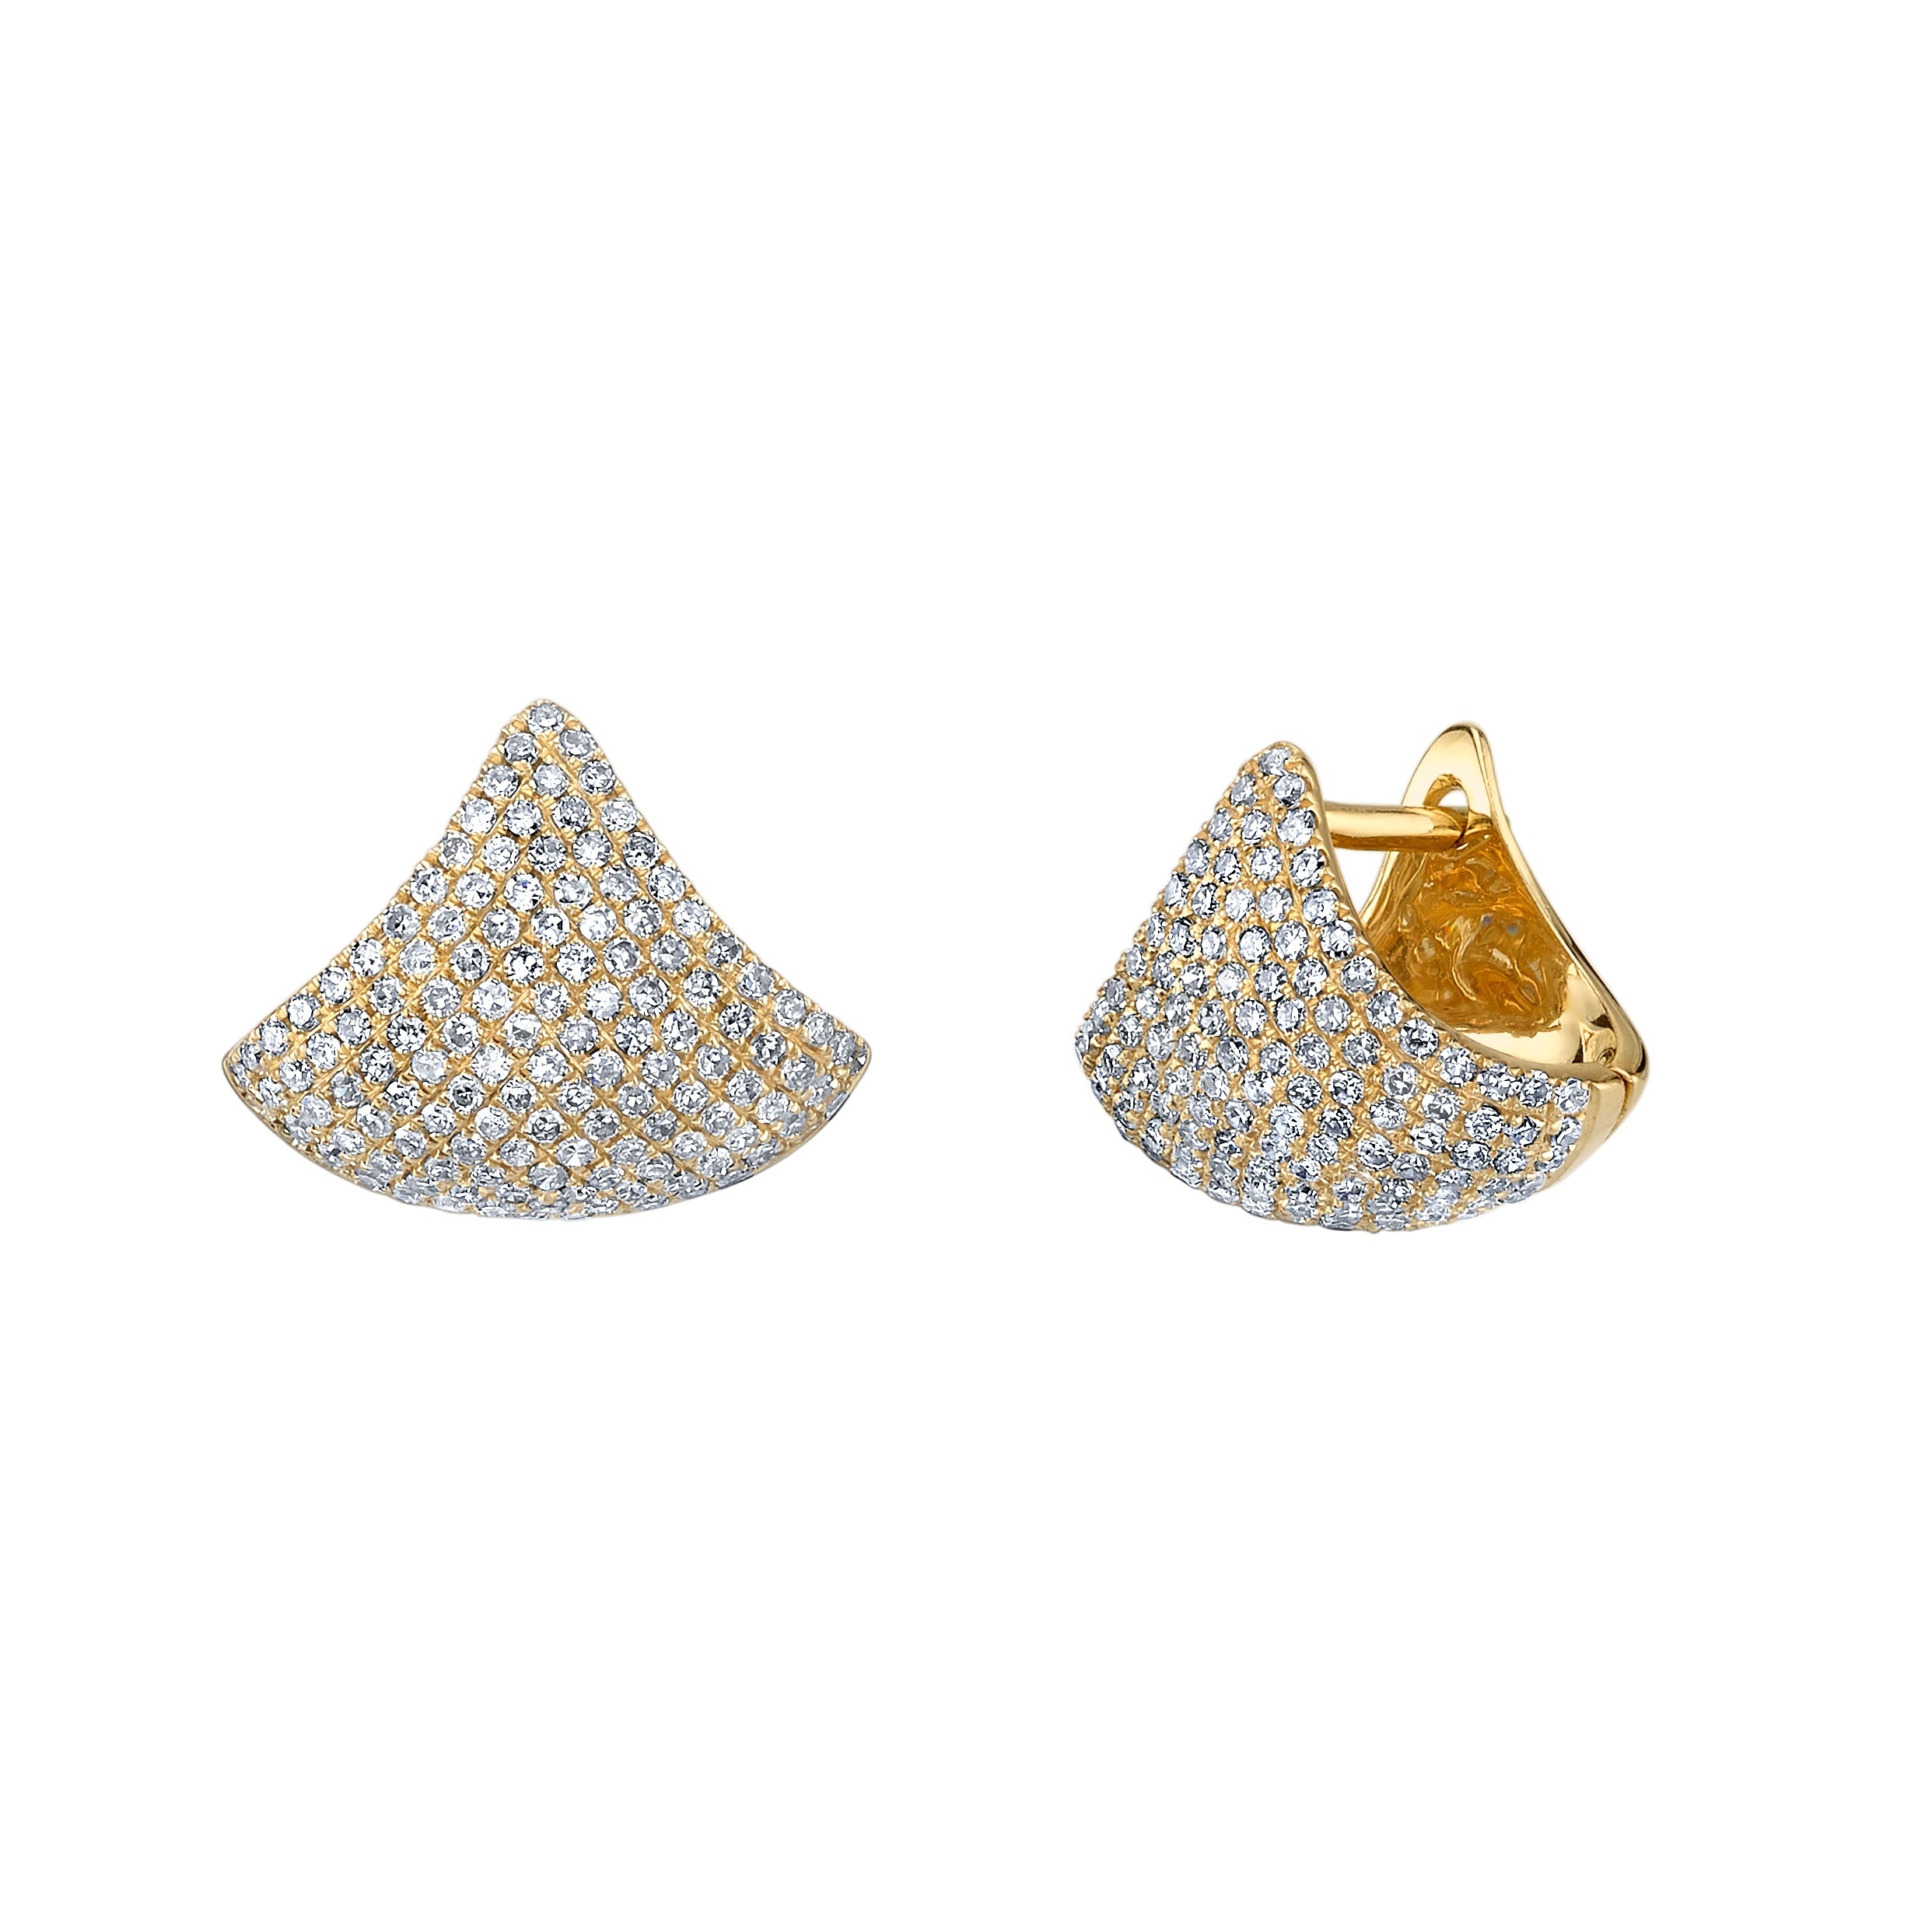 Small Apse Earrings With White Pavé Diamonds